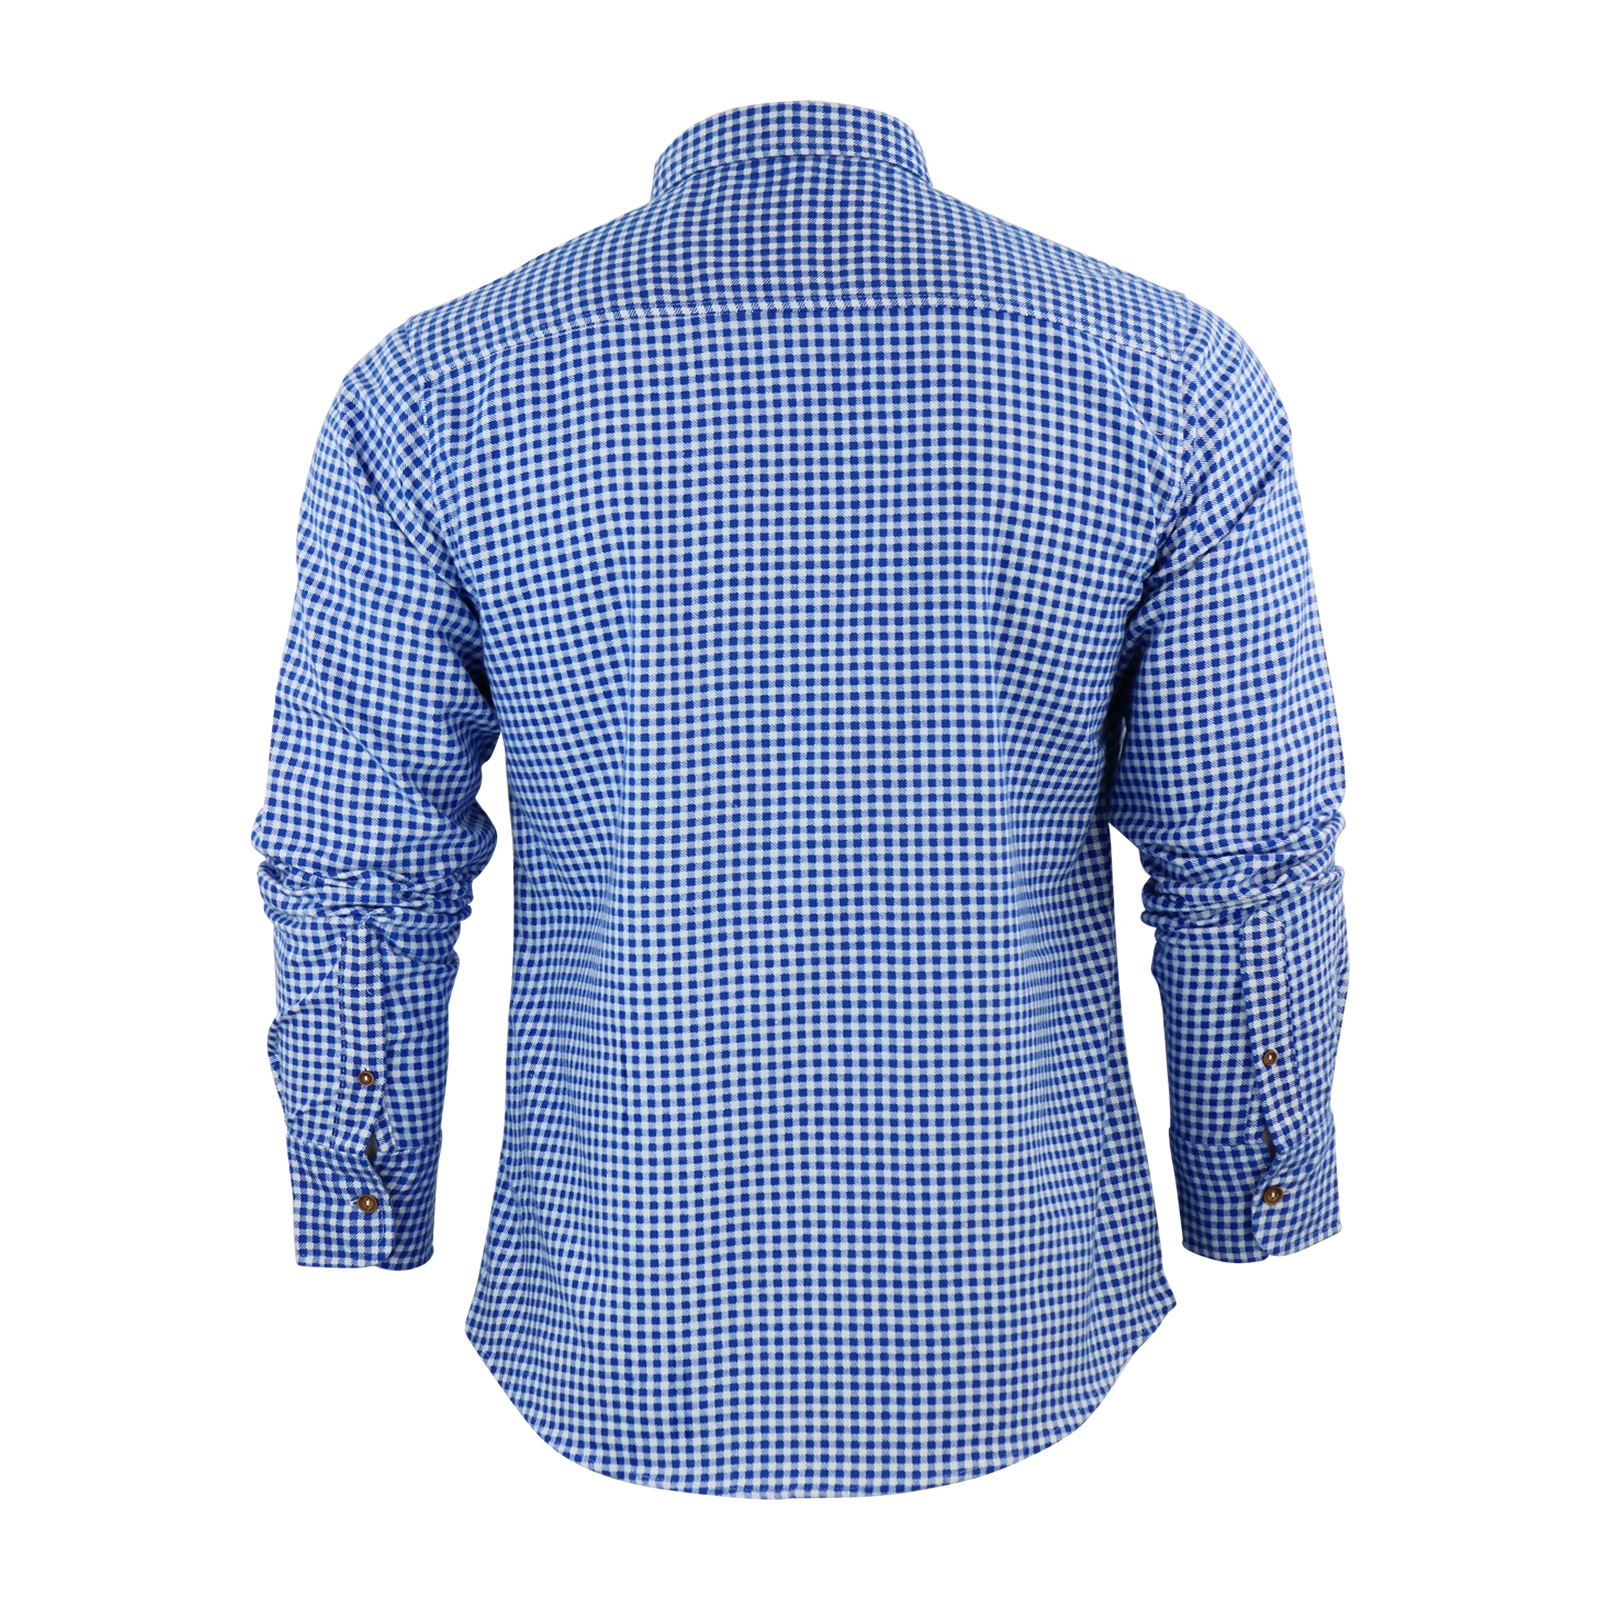 Mens-Check-Shirt-Brave-Soul-Flannel-Brushed-Cotton-Long-Sleeve-Casual-Top thumbnail 6